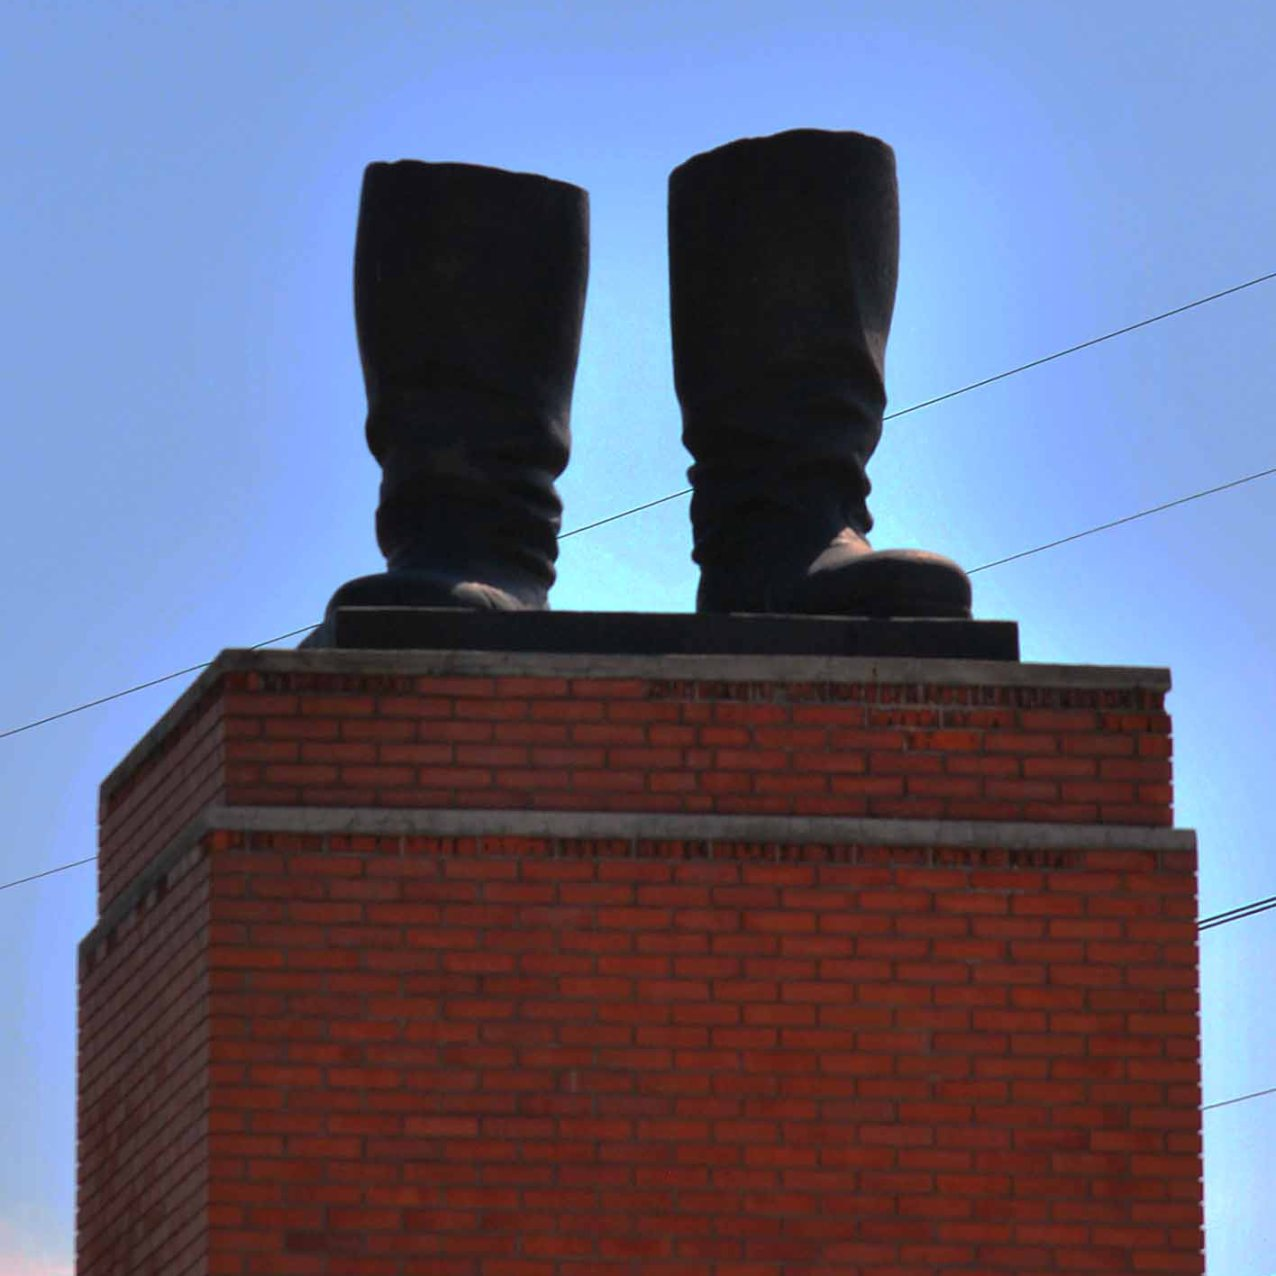 A replica of Stalin's boots. All that remained of the giant statue of Stalin after the revolution in 1956.